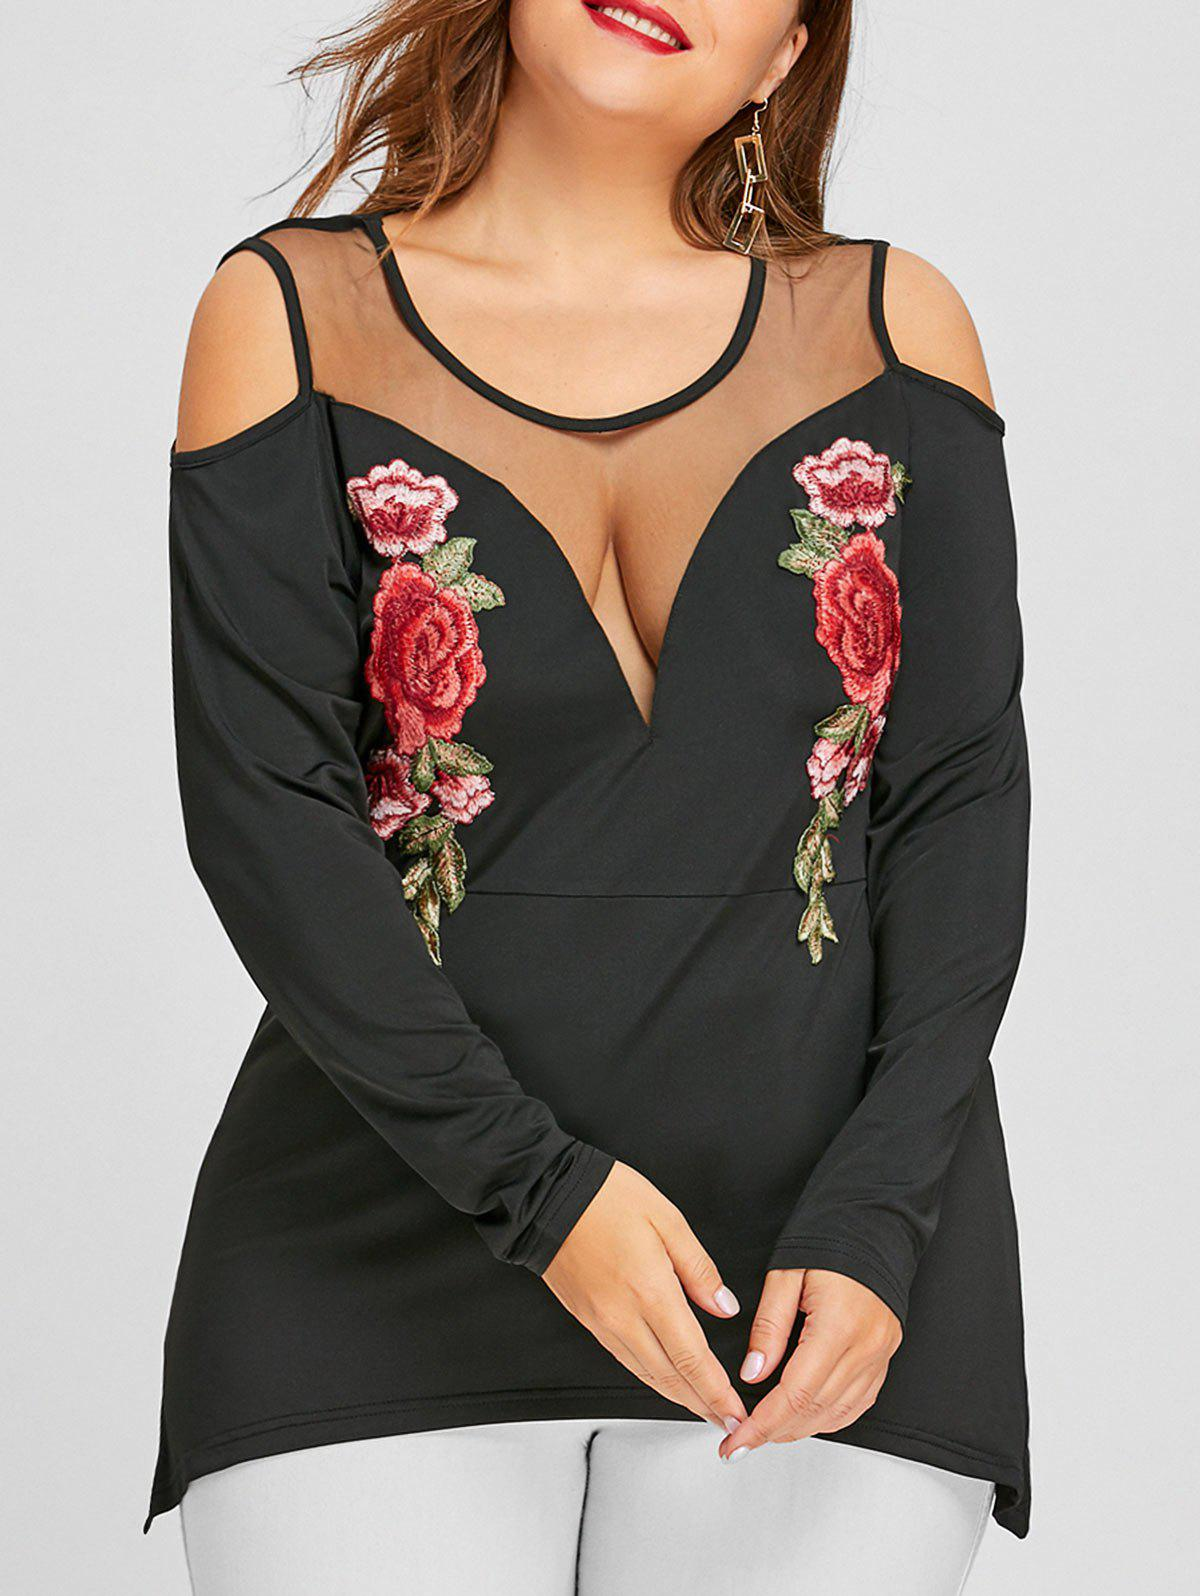 Plus Size Cold Shoulder Floral Embroidered T-shirtWOMEN<br><br>Size: 2XL; Color: BLACK; Material: Polyester; Shirt Length: Regular; Sleeve Length: Full; Collar: Round Neck; Style: Fashion; Season: Fall,Spring; Sleeve Type: Cold Shoulder; Embellishment: Embroidery; Pattern Type: Floral; Weight: 0.2900kg; Package Contents: 1 x T-shirt;